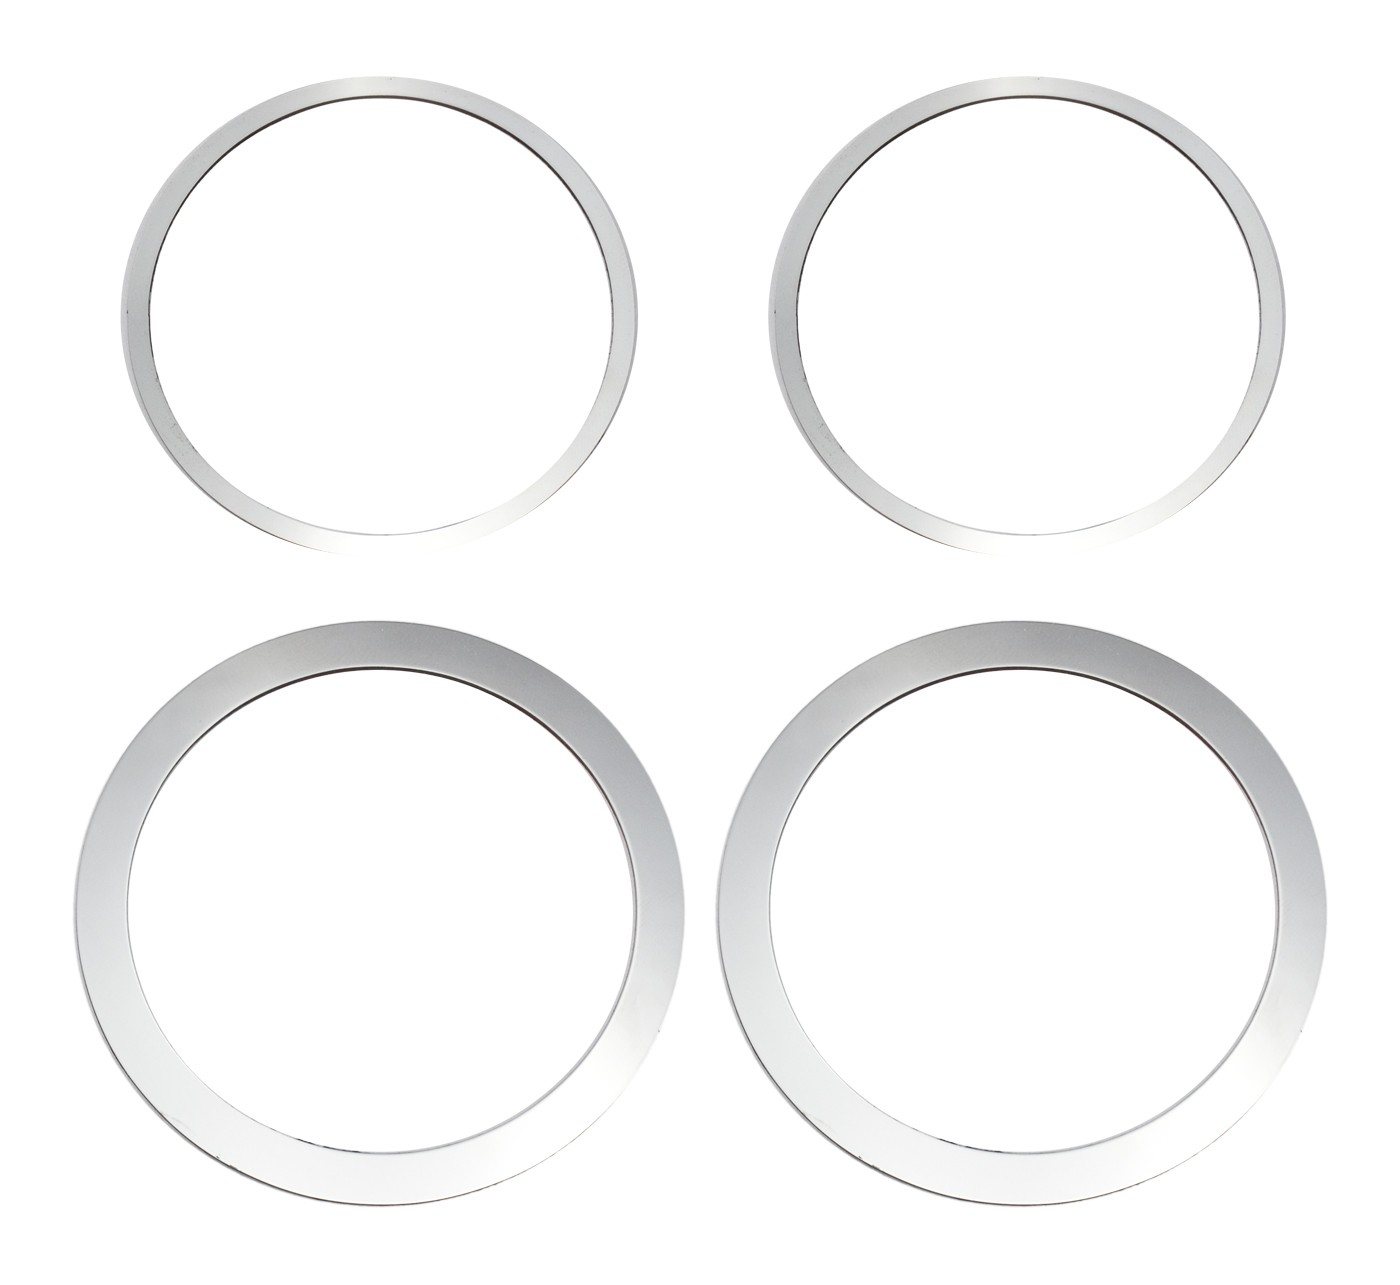 2015-2017 Mustang Polished Stainless Steel Midrange Speaker Trim Rings 4pc LH RH